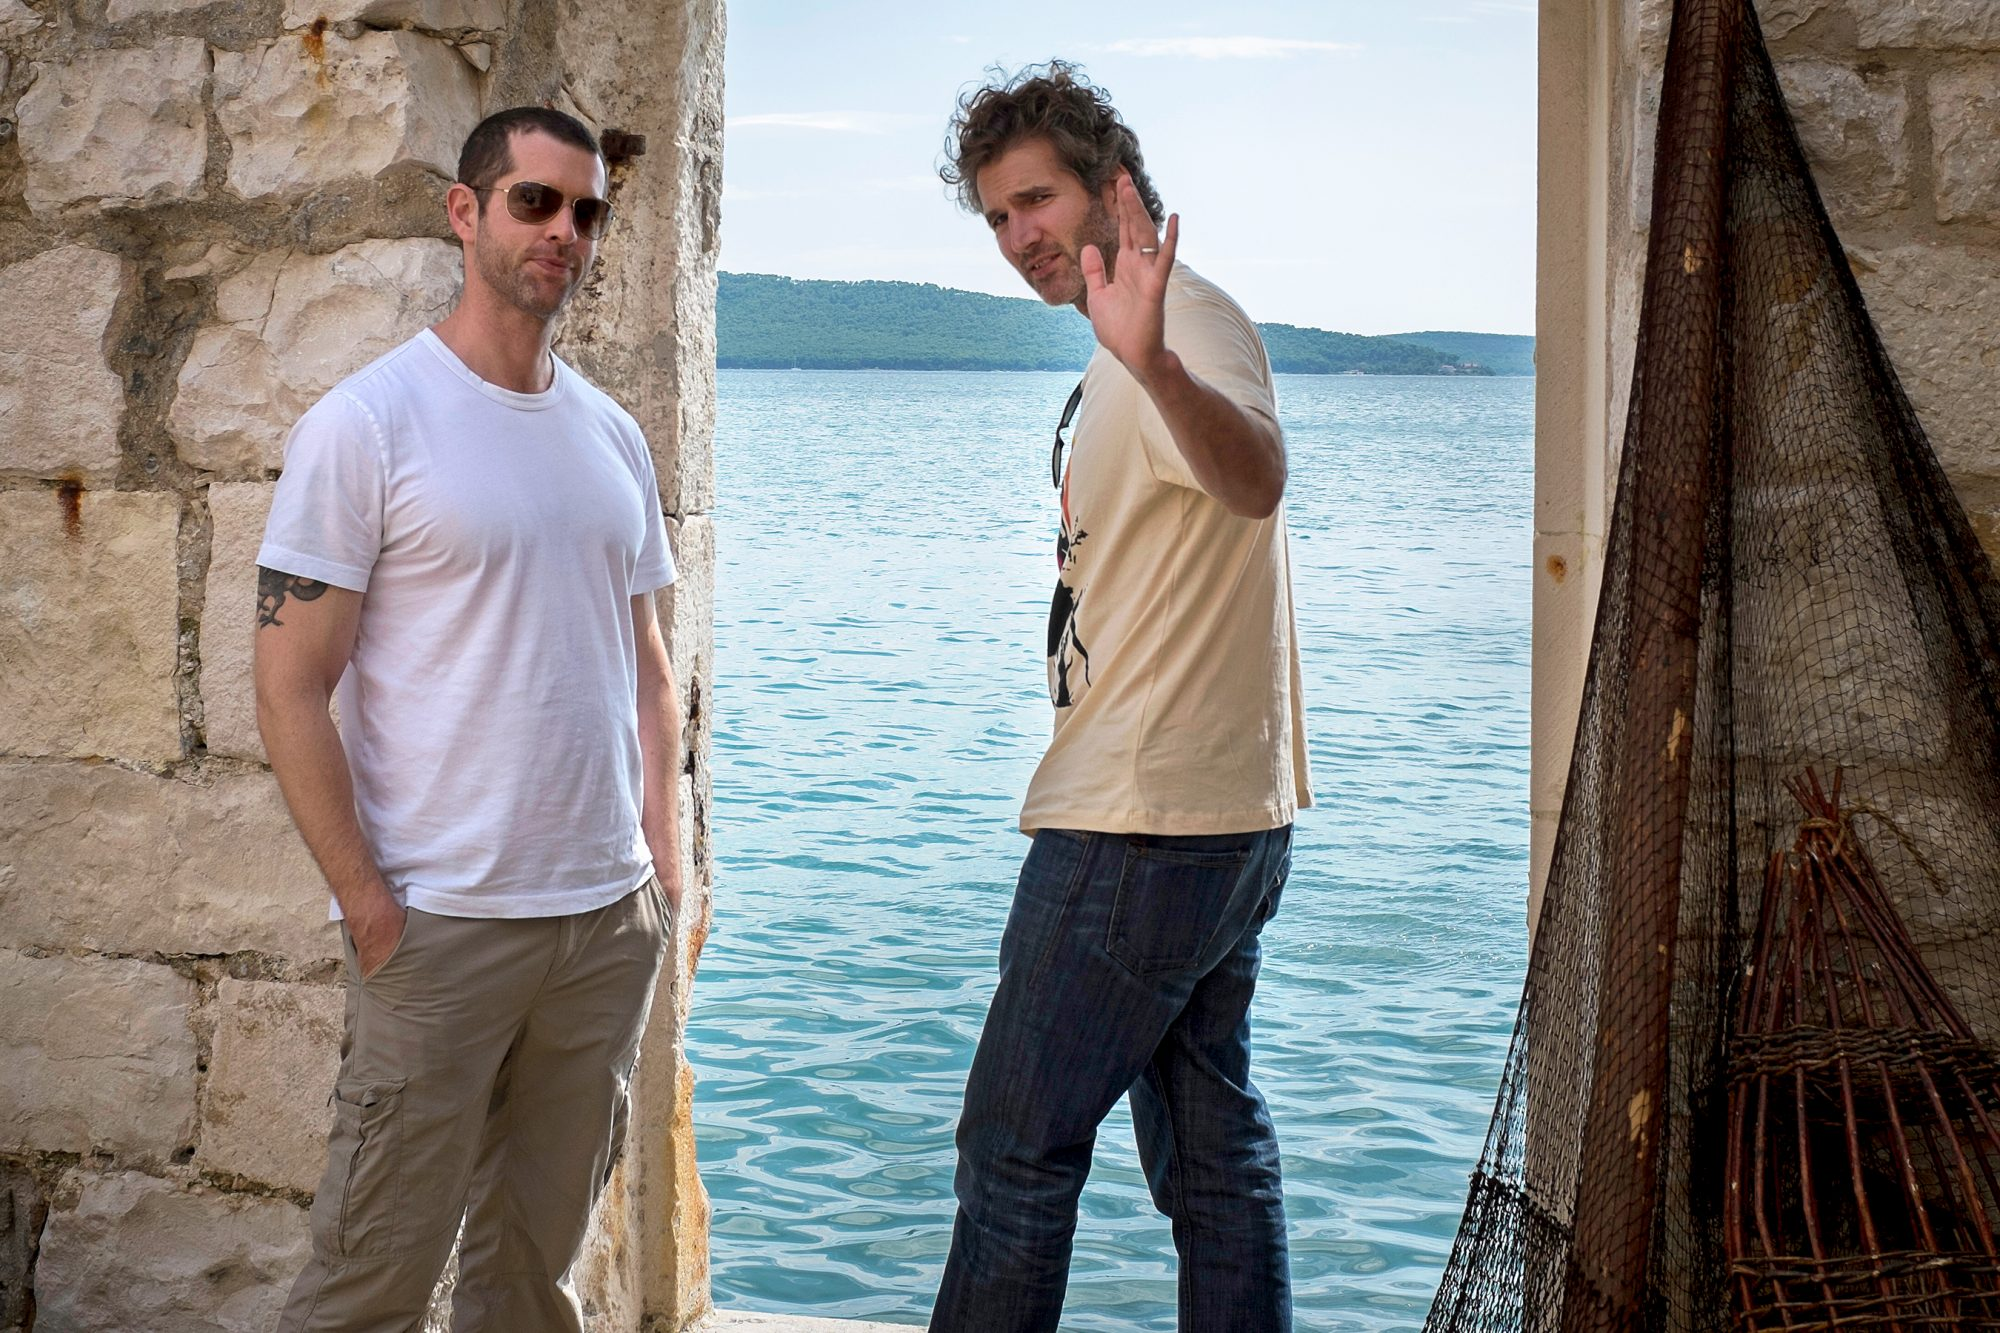 D.B. Weiss and David BenioffSeason 5 Episode 8Behind the Scenes